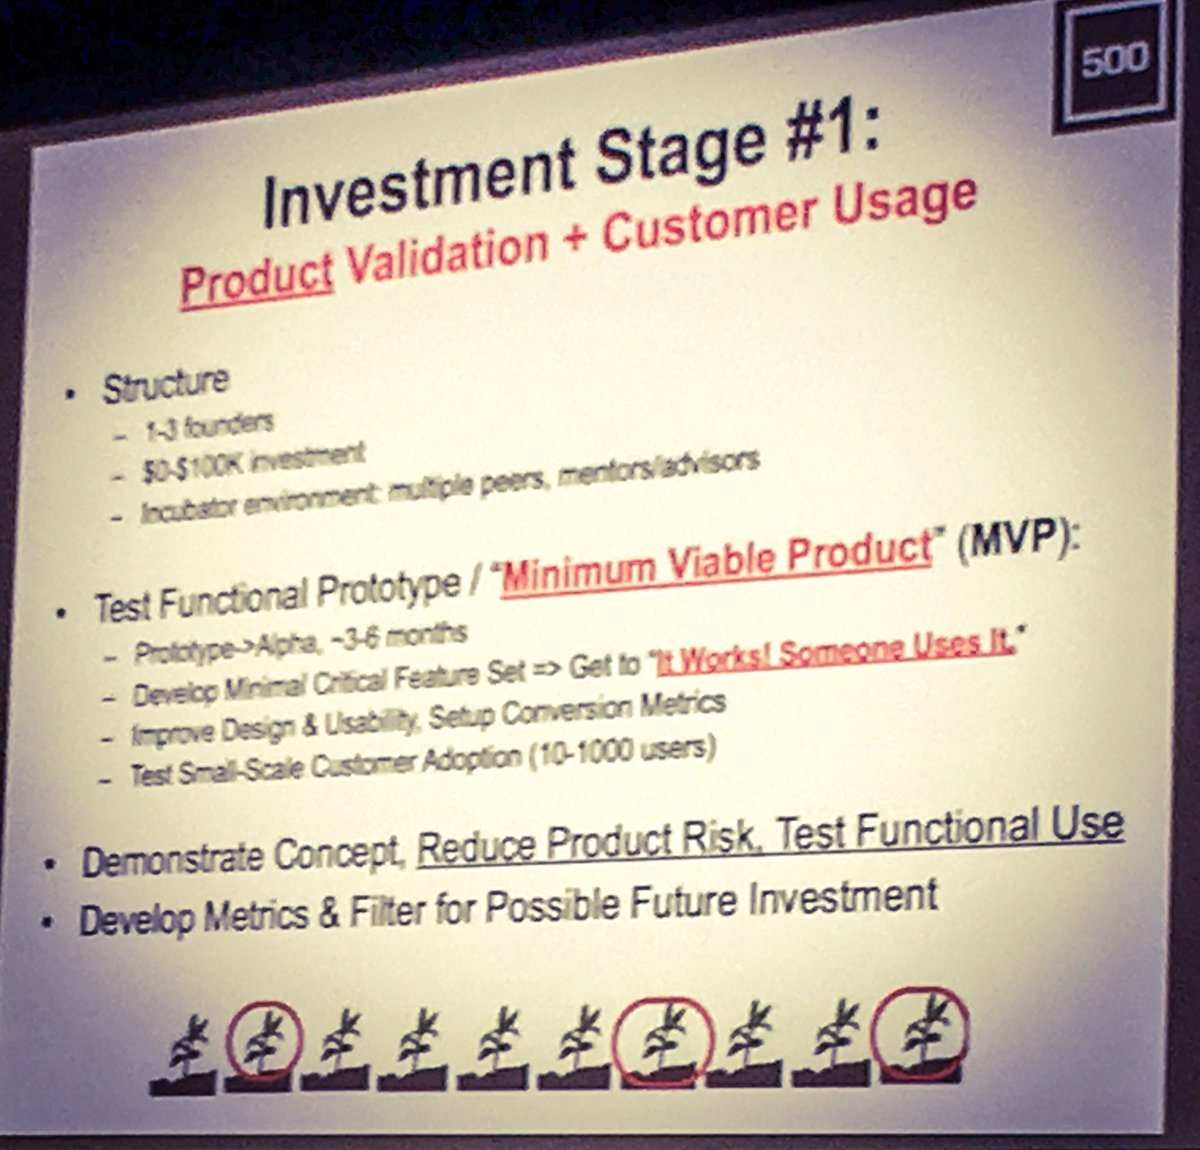 Some of best bits of great presentation by @davemcclure at #STHLMTech. Ecosystems need optimism & portfolio approach https://t.co/l6B0rteeo8